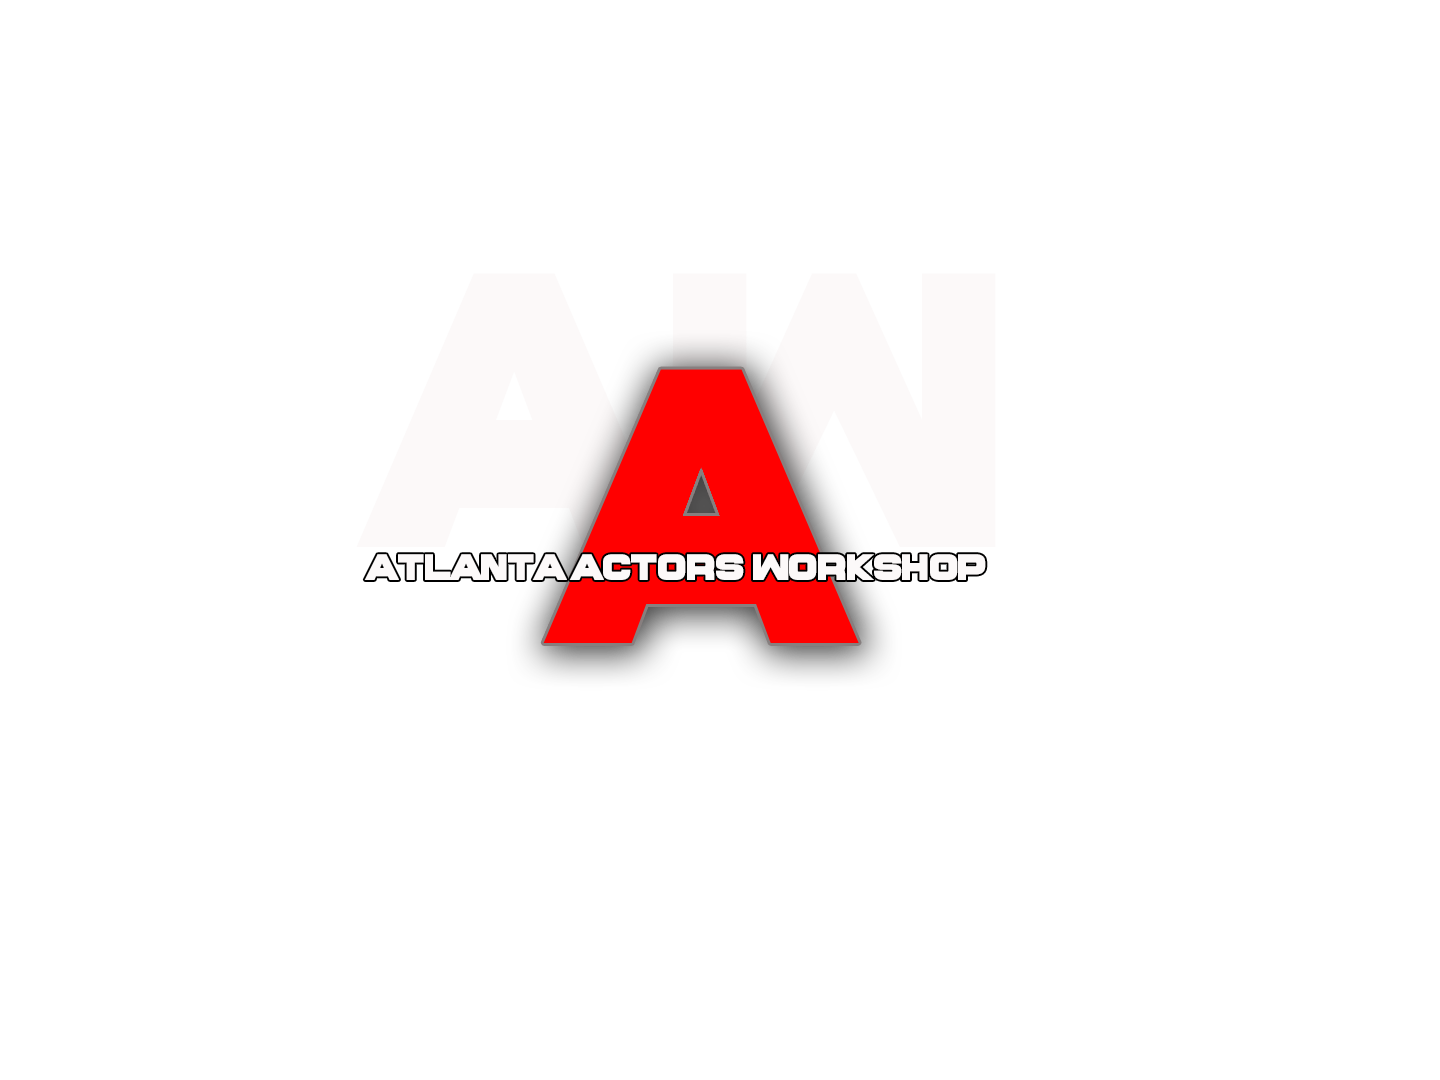 Atlanta Actors Workshop